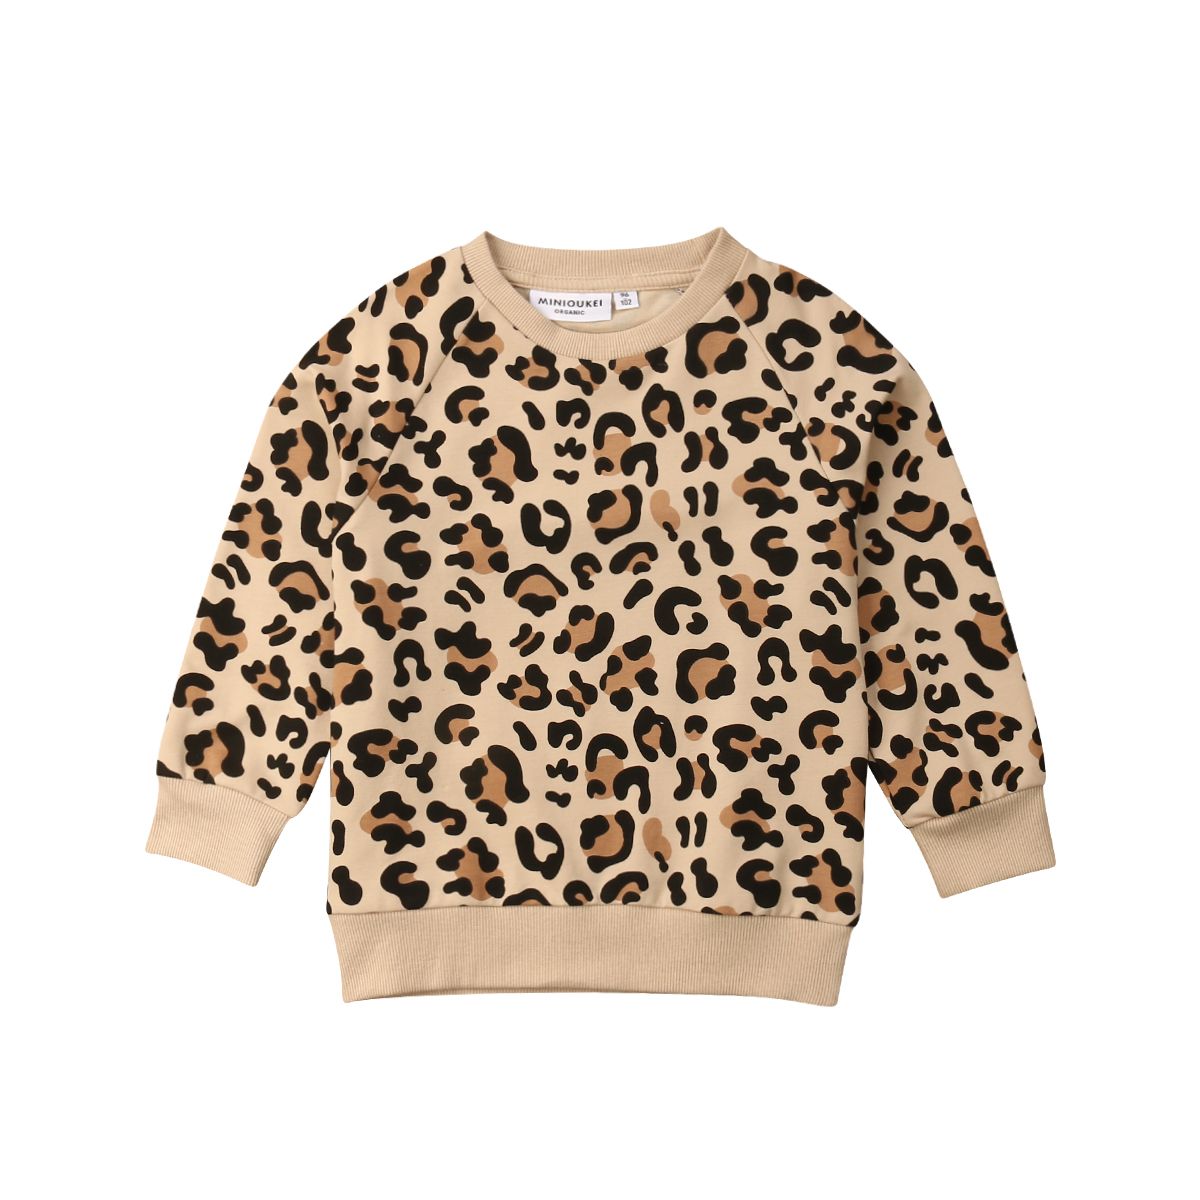 Kids Baby Girls Boys Lovely Leopard Cotton T-shirt Long Sleeve Tops Clothes Outfits